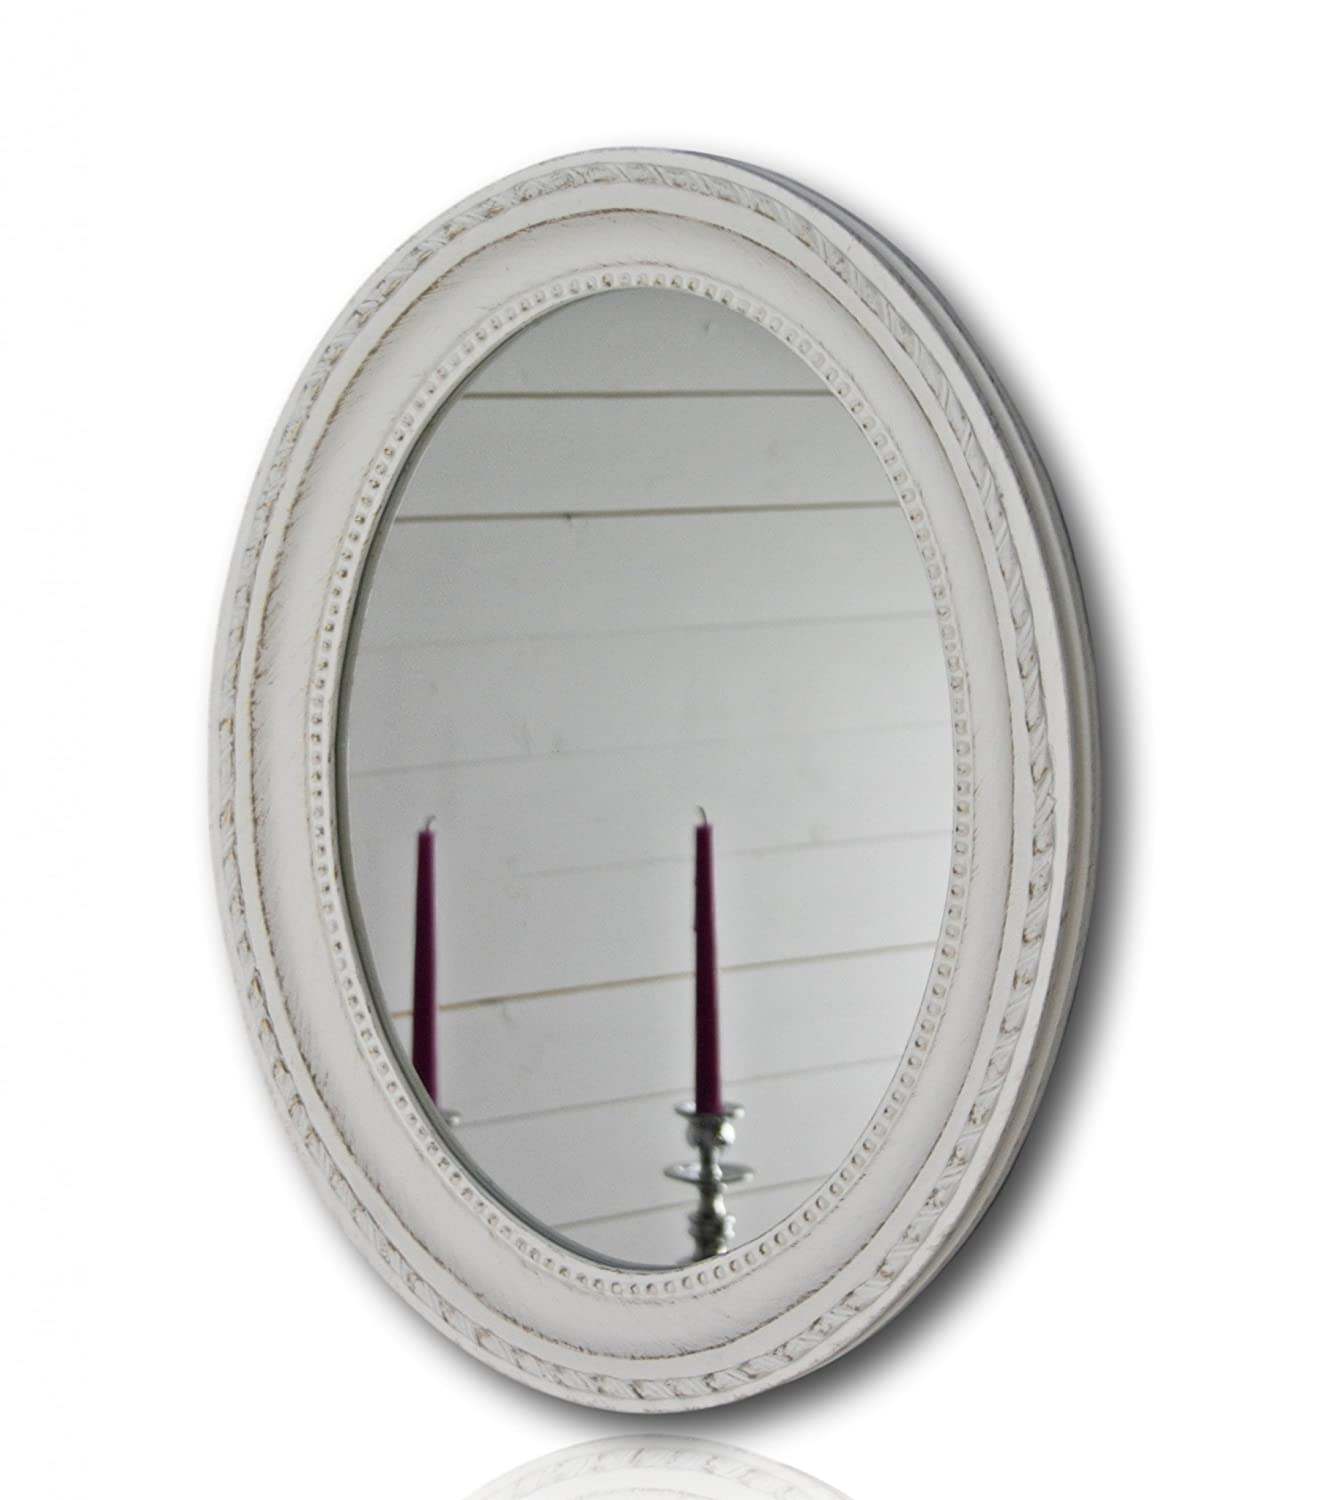 elbmöbel Wall mirror round oval in shabby chic antique SILVER - large W37 x H47